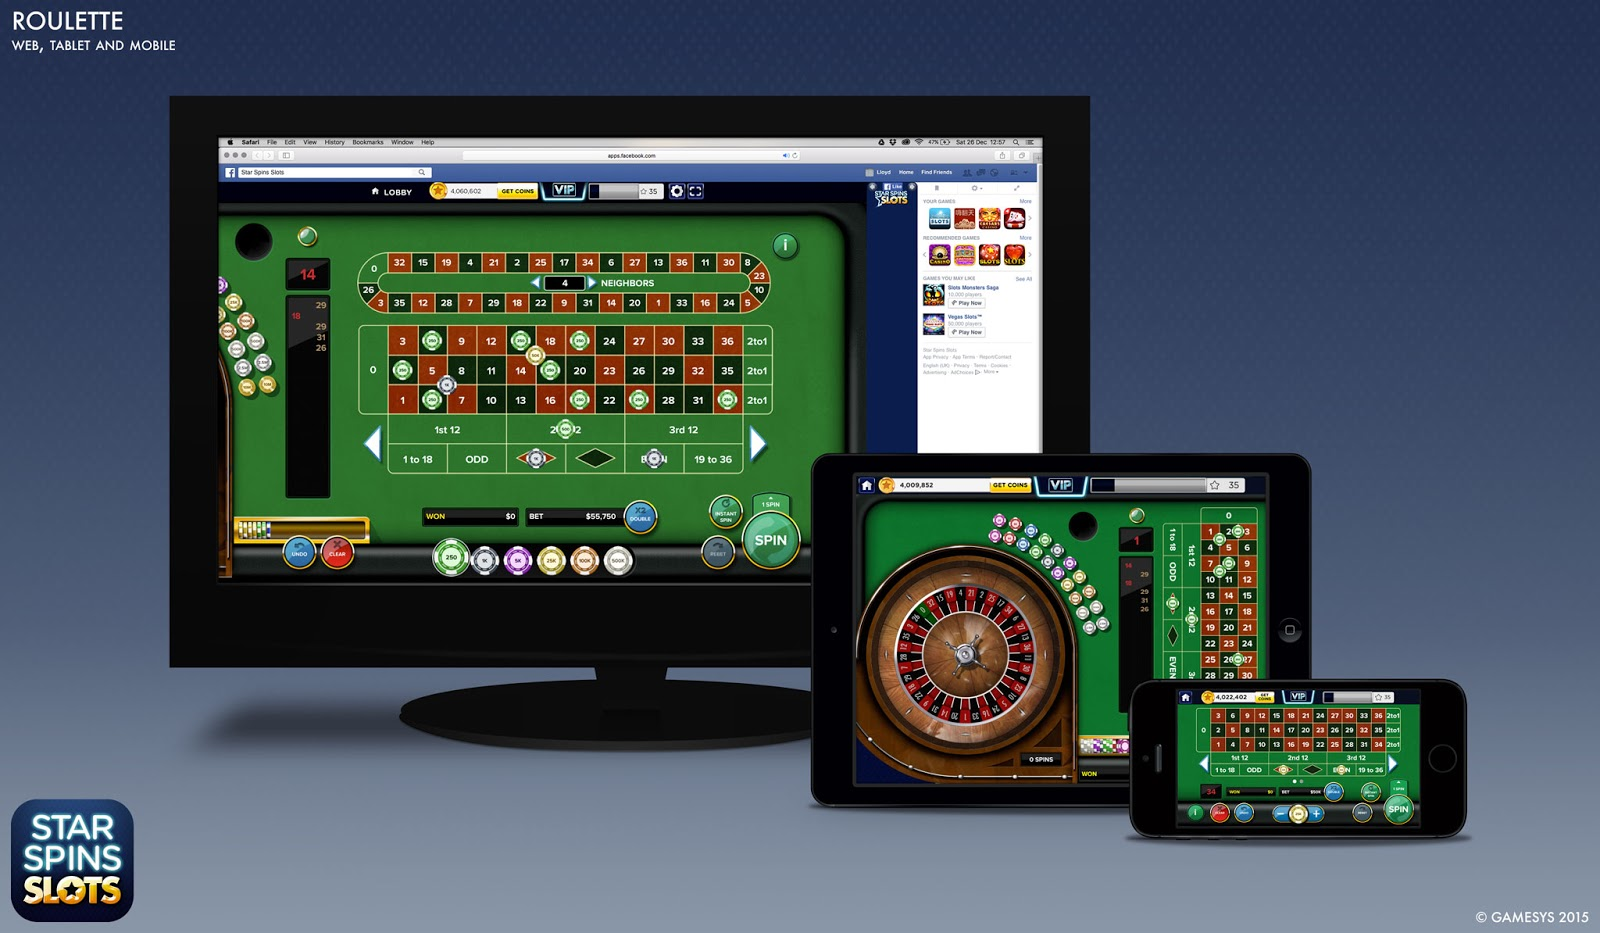 Roulette risk calculator : Play online casino games keno slots